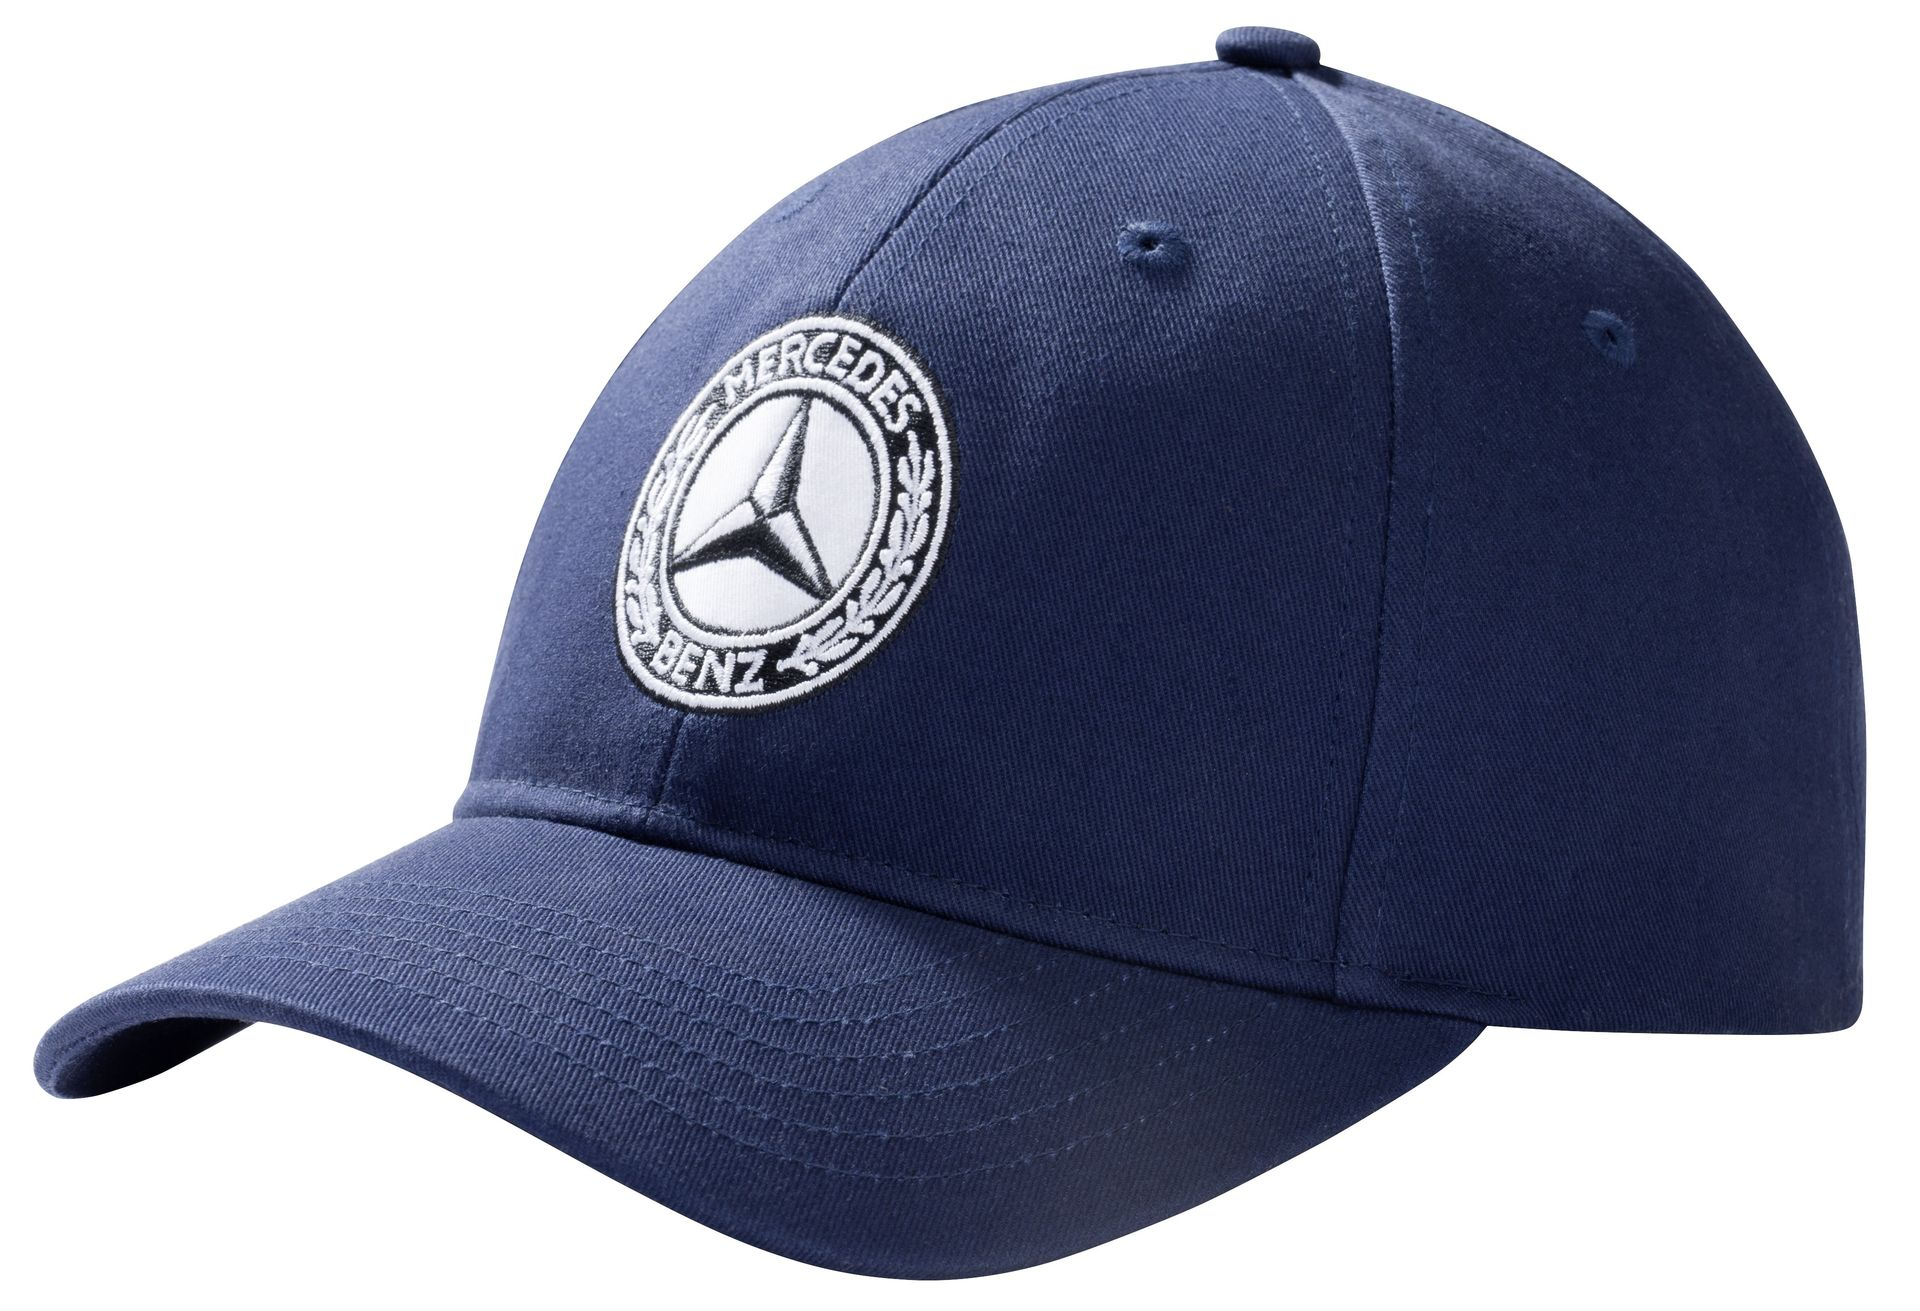 Мужская бейсболка Mercedes Men's Cap Navy Blue, 100% Cotton